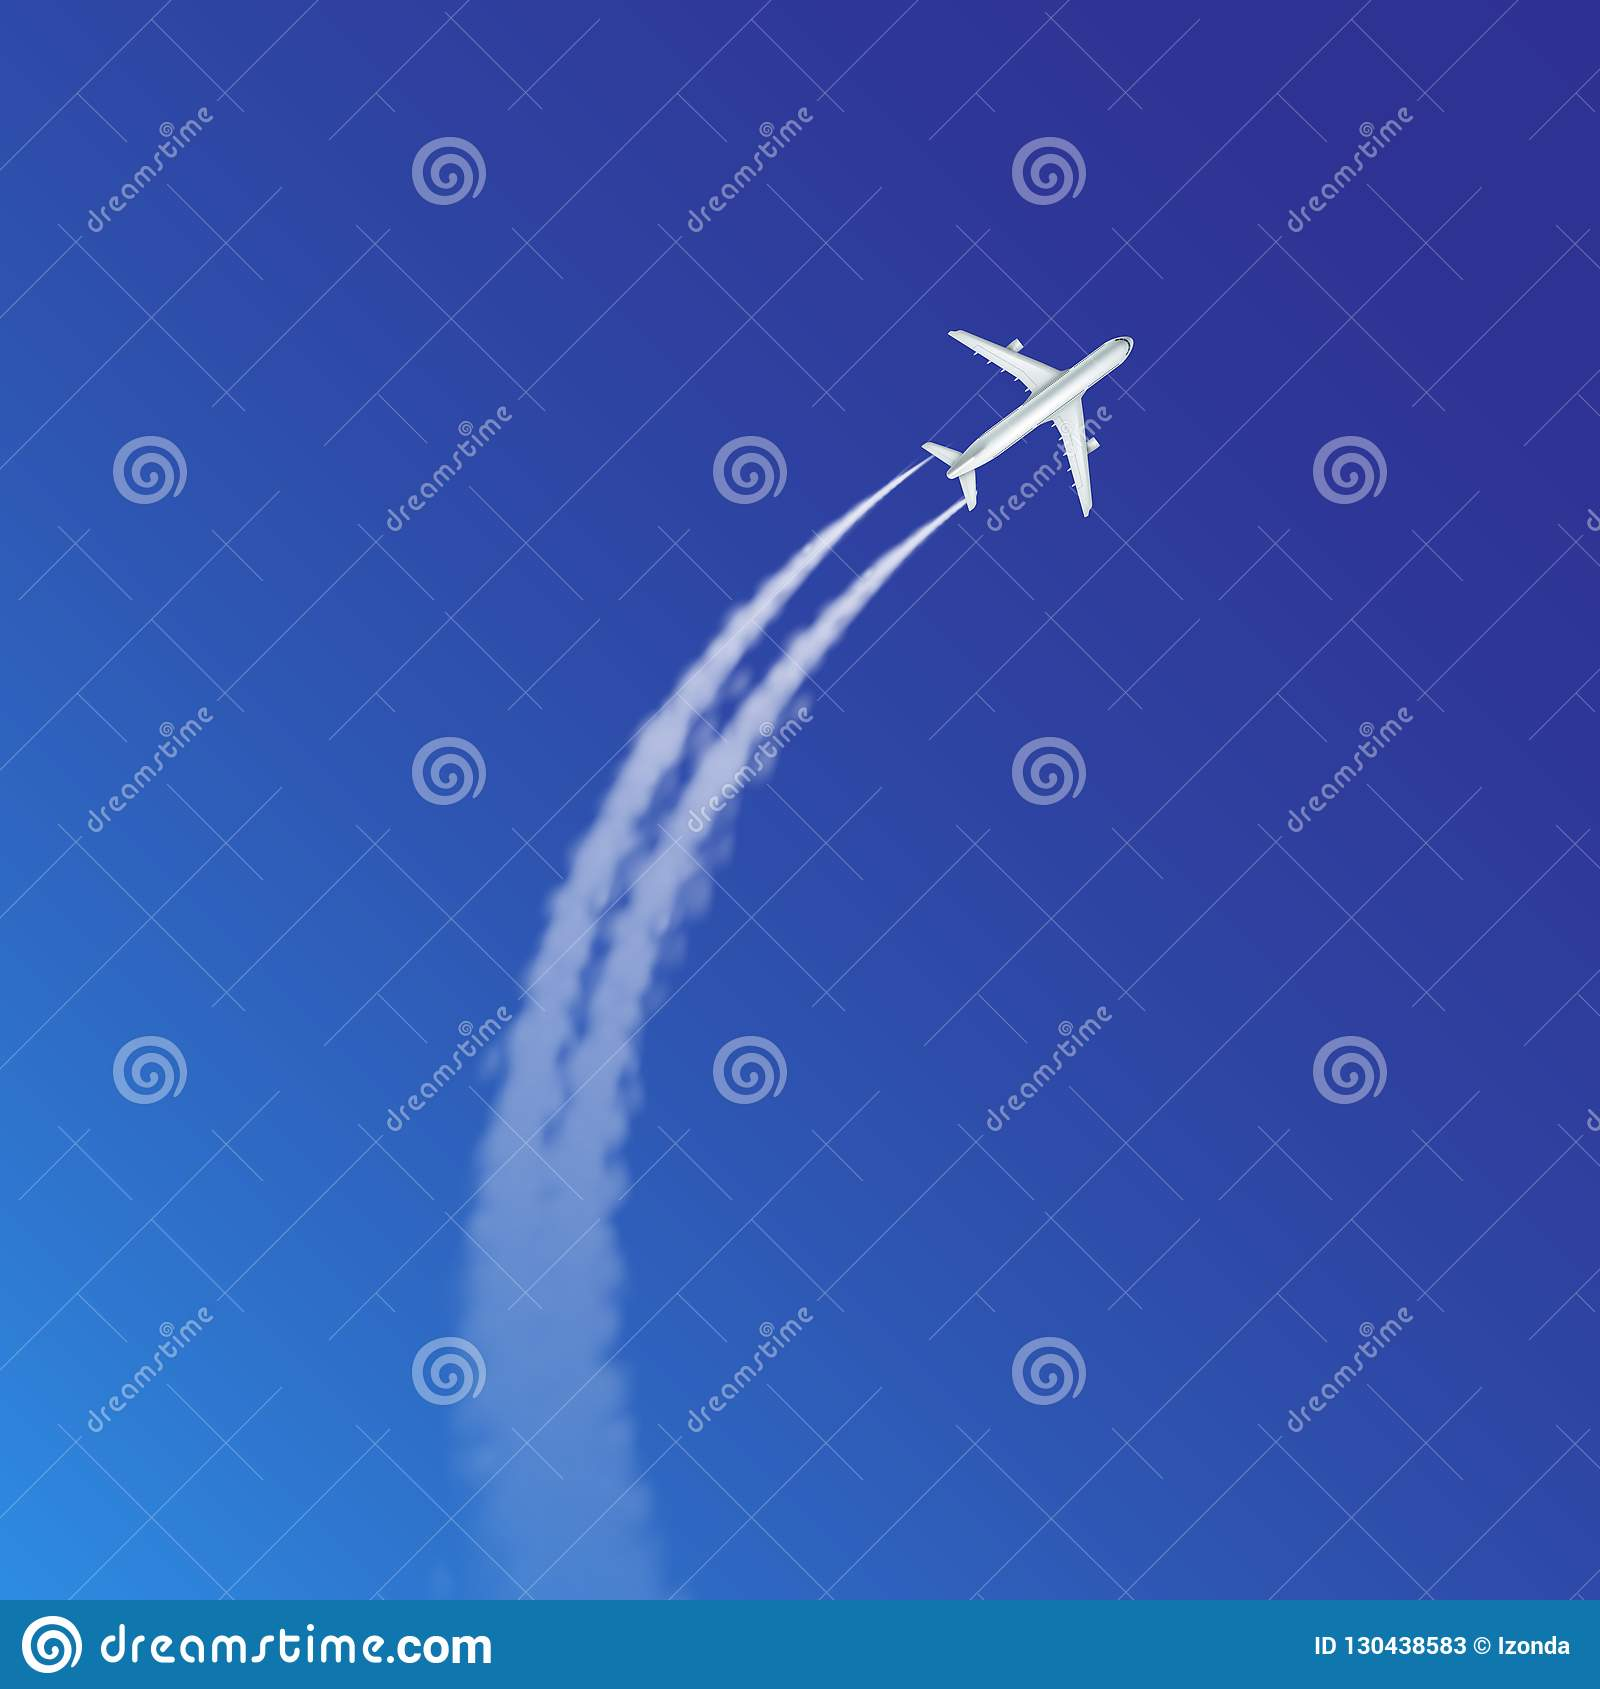 Vector illustration of plane loop and arc track or trails with white smoke on blue sky background